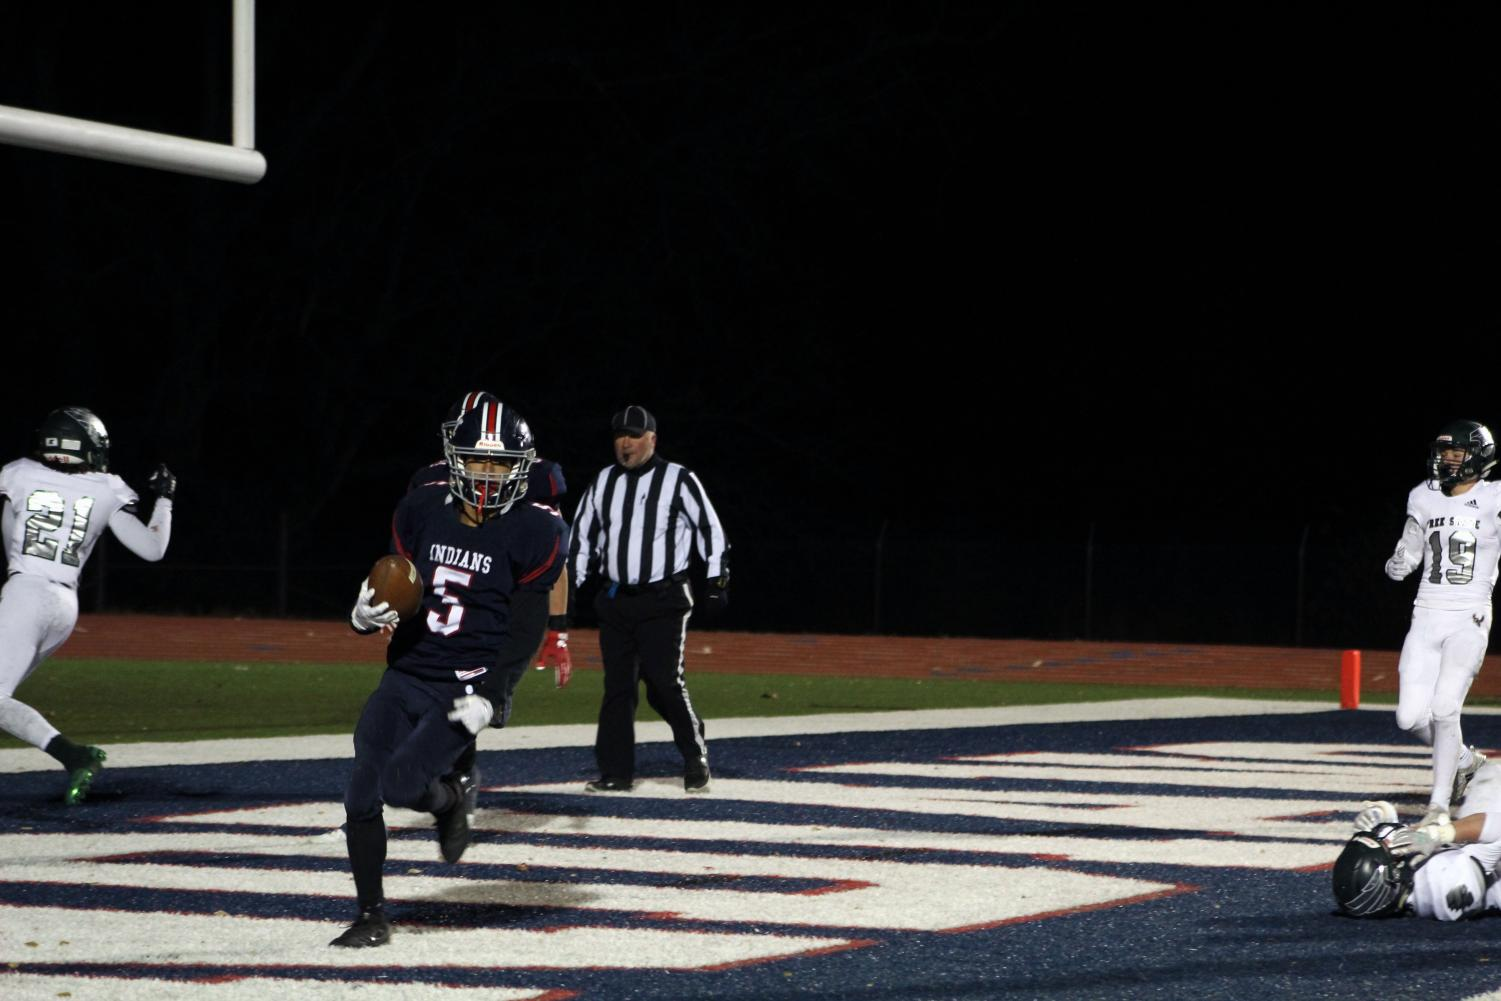 Junior+Lorrenzo+Wilhoite+jogs+out+of+the+endzone+after+securing+a+touchdown+agianst+Lawrence+Free+State.+The+game%2C+which+took+place+on+Nov.+8%2C+led+to+the+team+taking+the+Regional+title+yet+again%2C+leading+them+further+into+the+season+at+Derby.